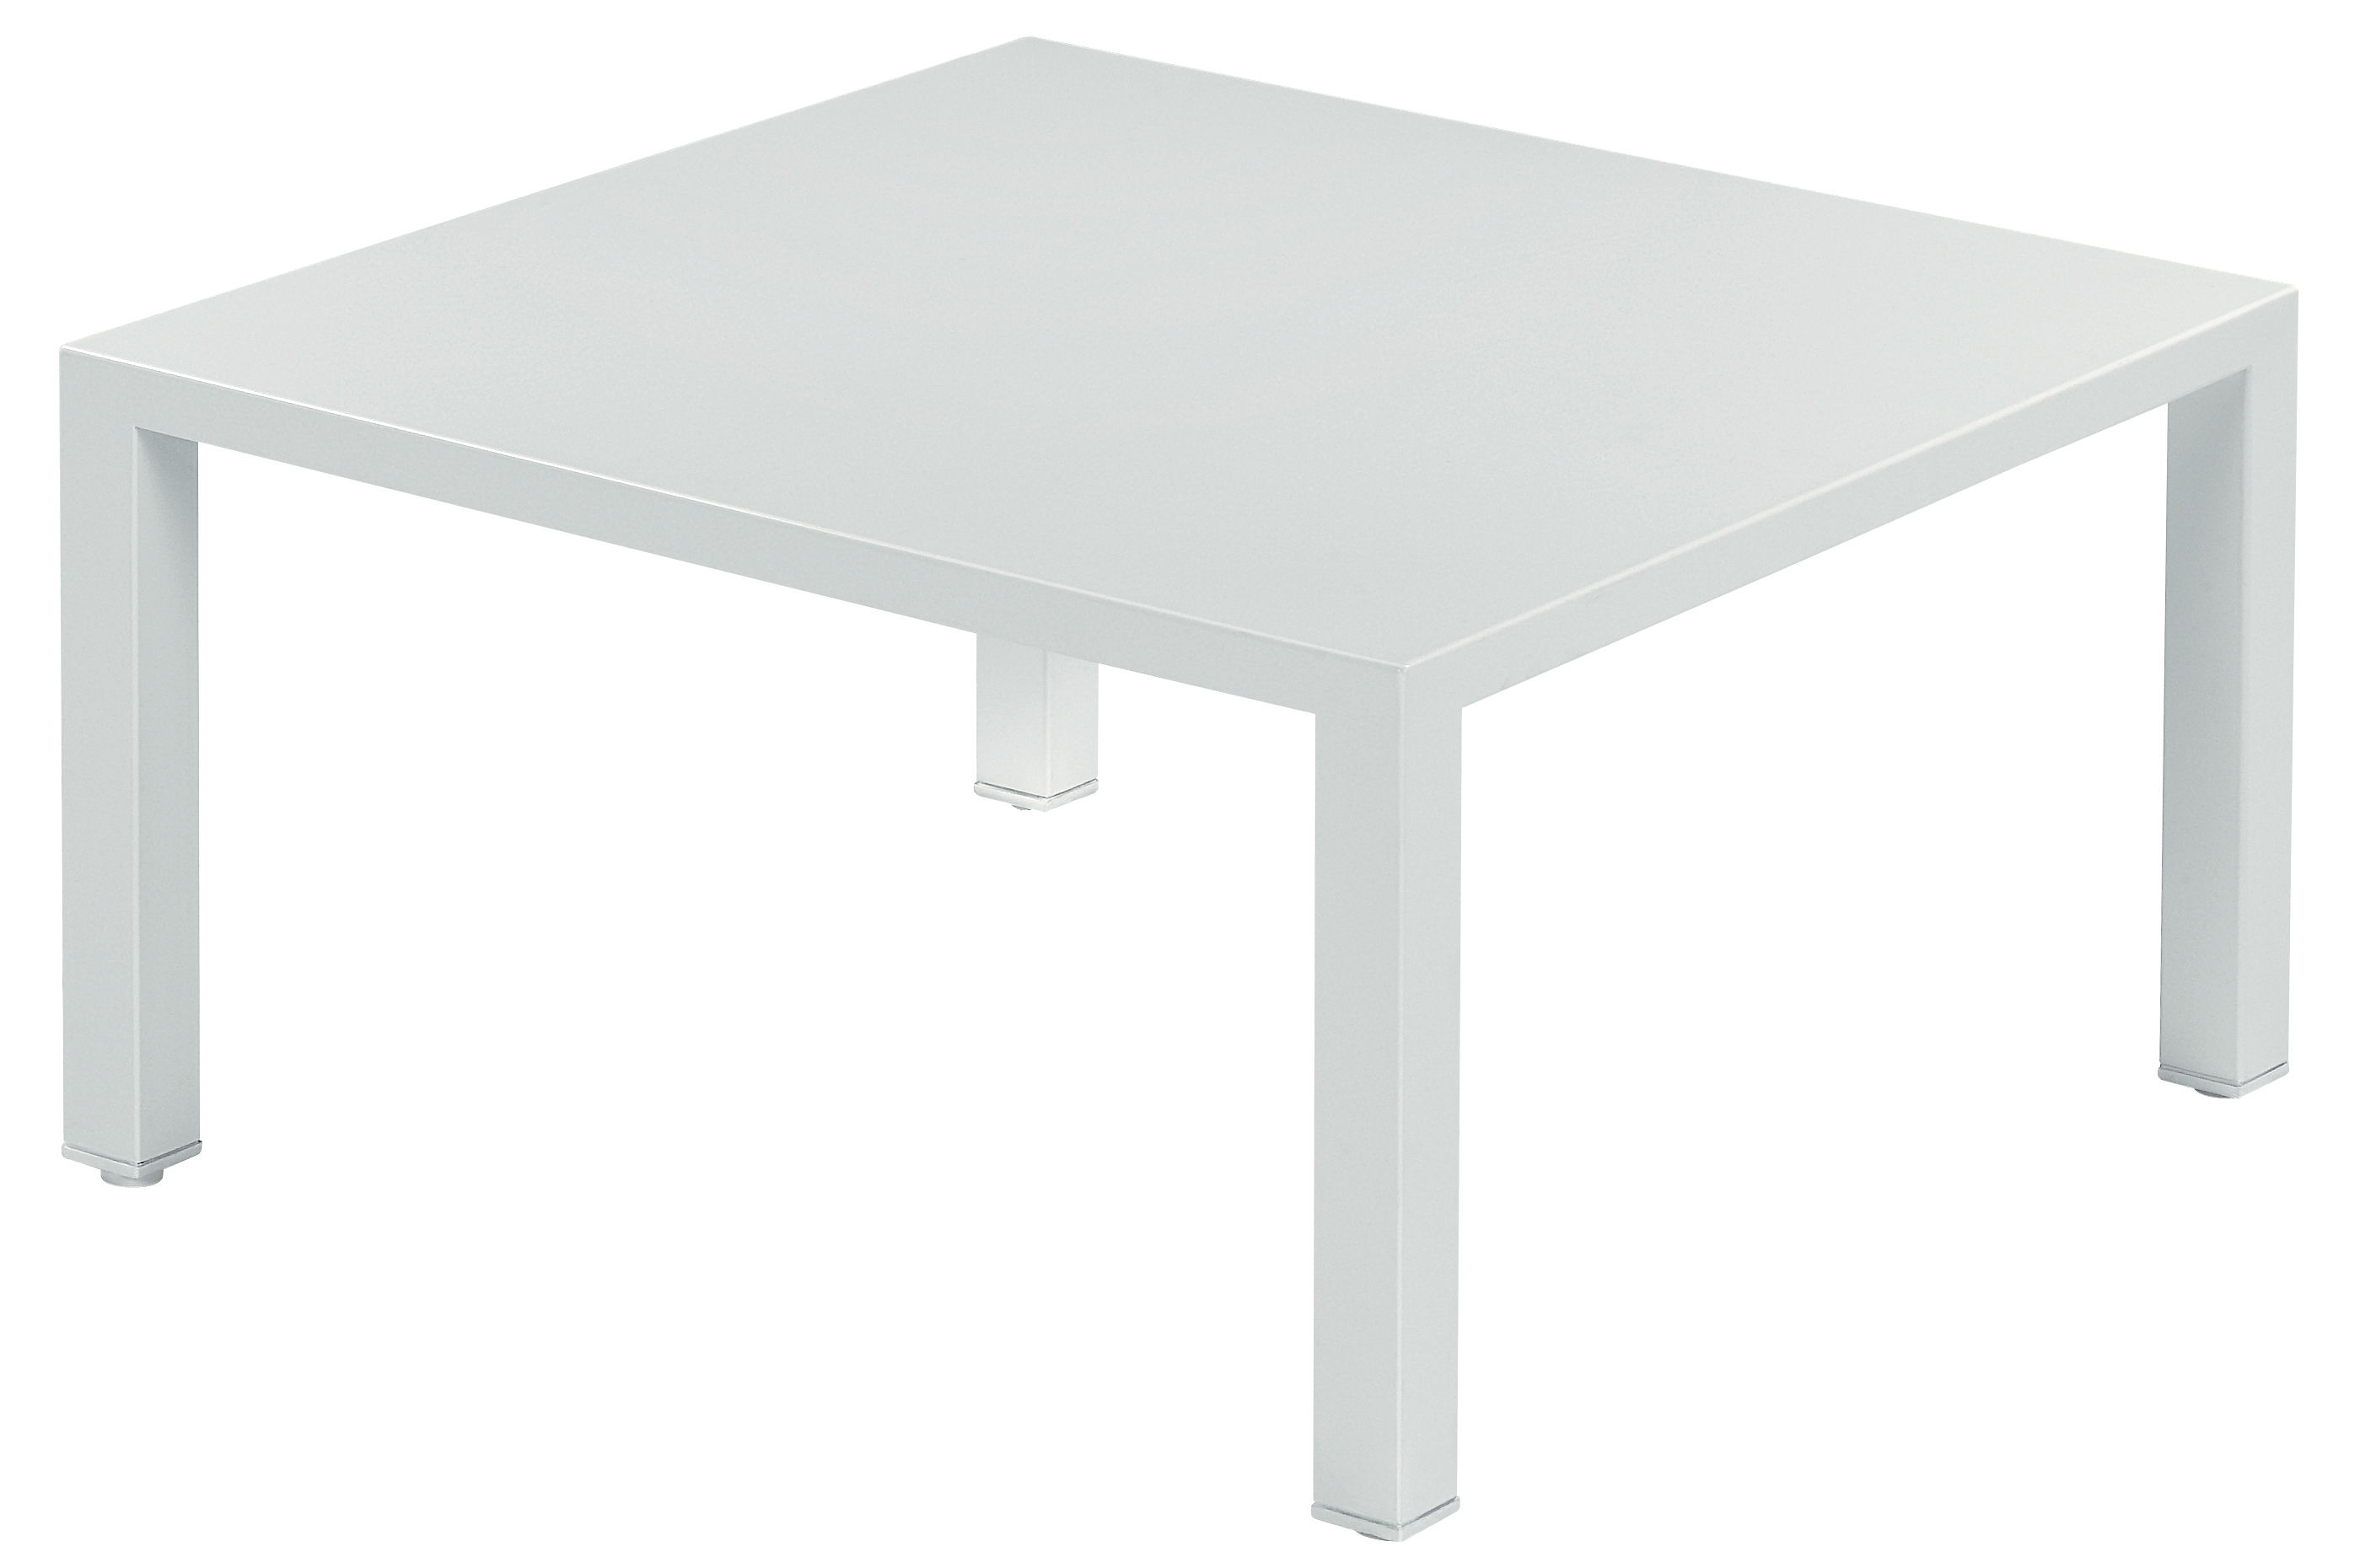 Table basse round m tal 80 x 80 cm blanc emu for Table basse design 80 cm